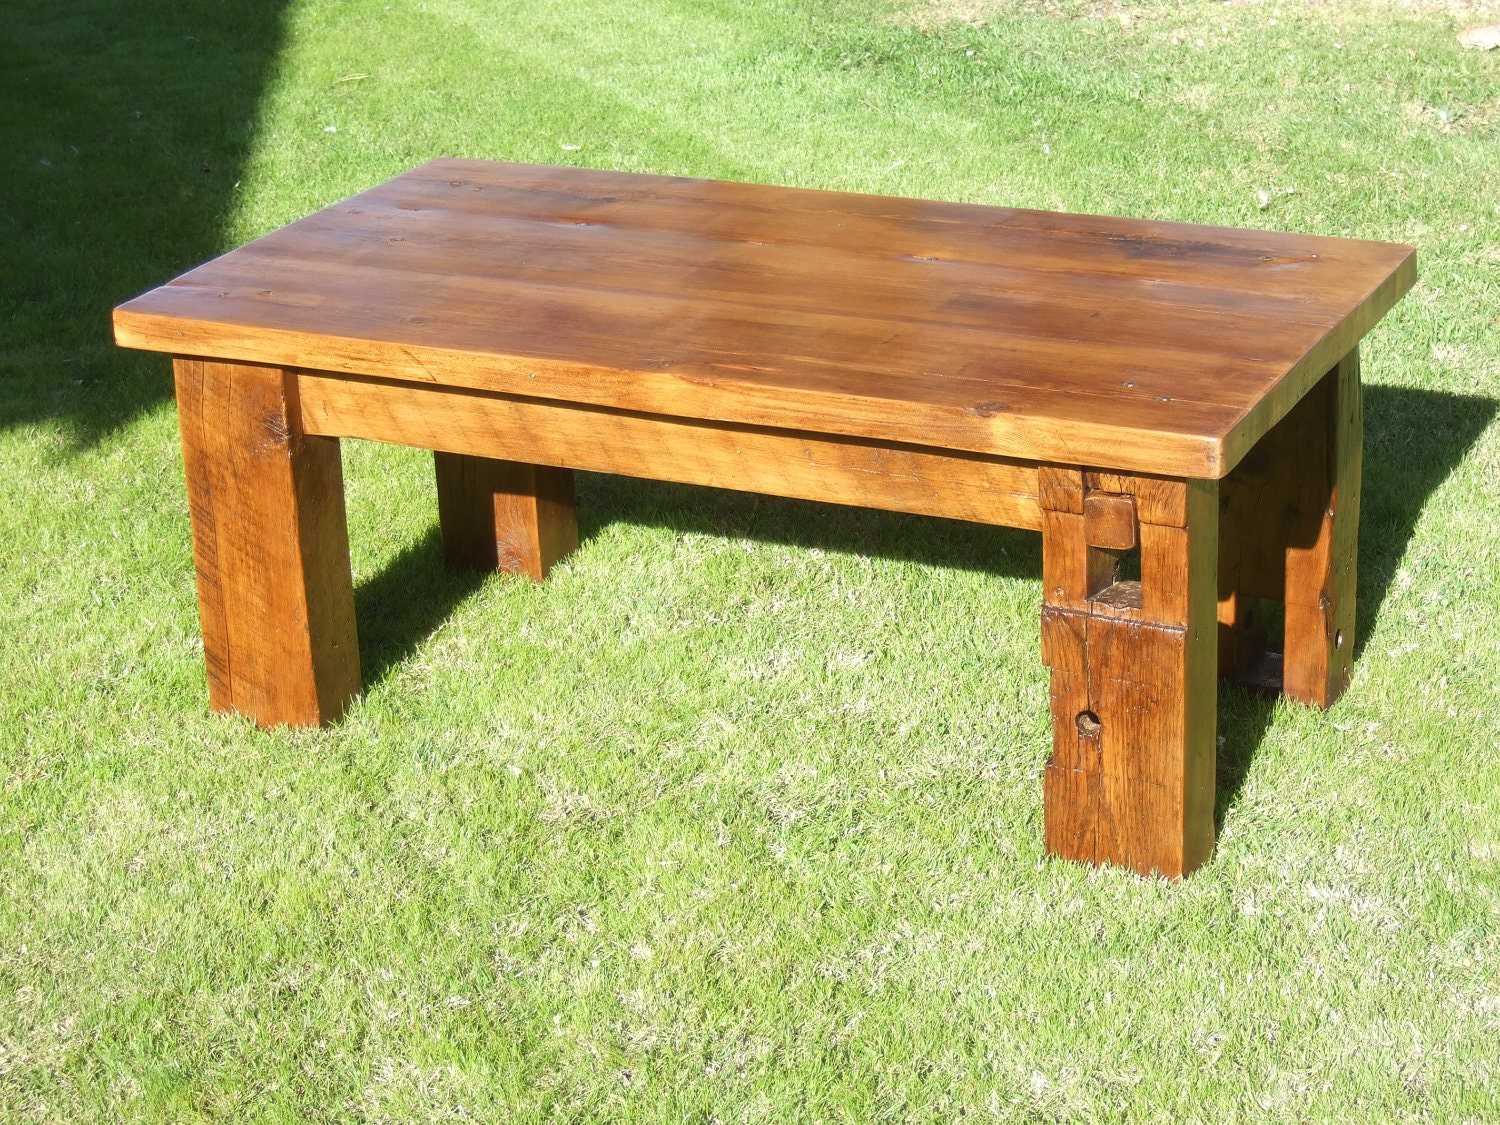 The Bartlett Barn Beam Coffee Table Handmade With Reclaimed